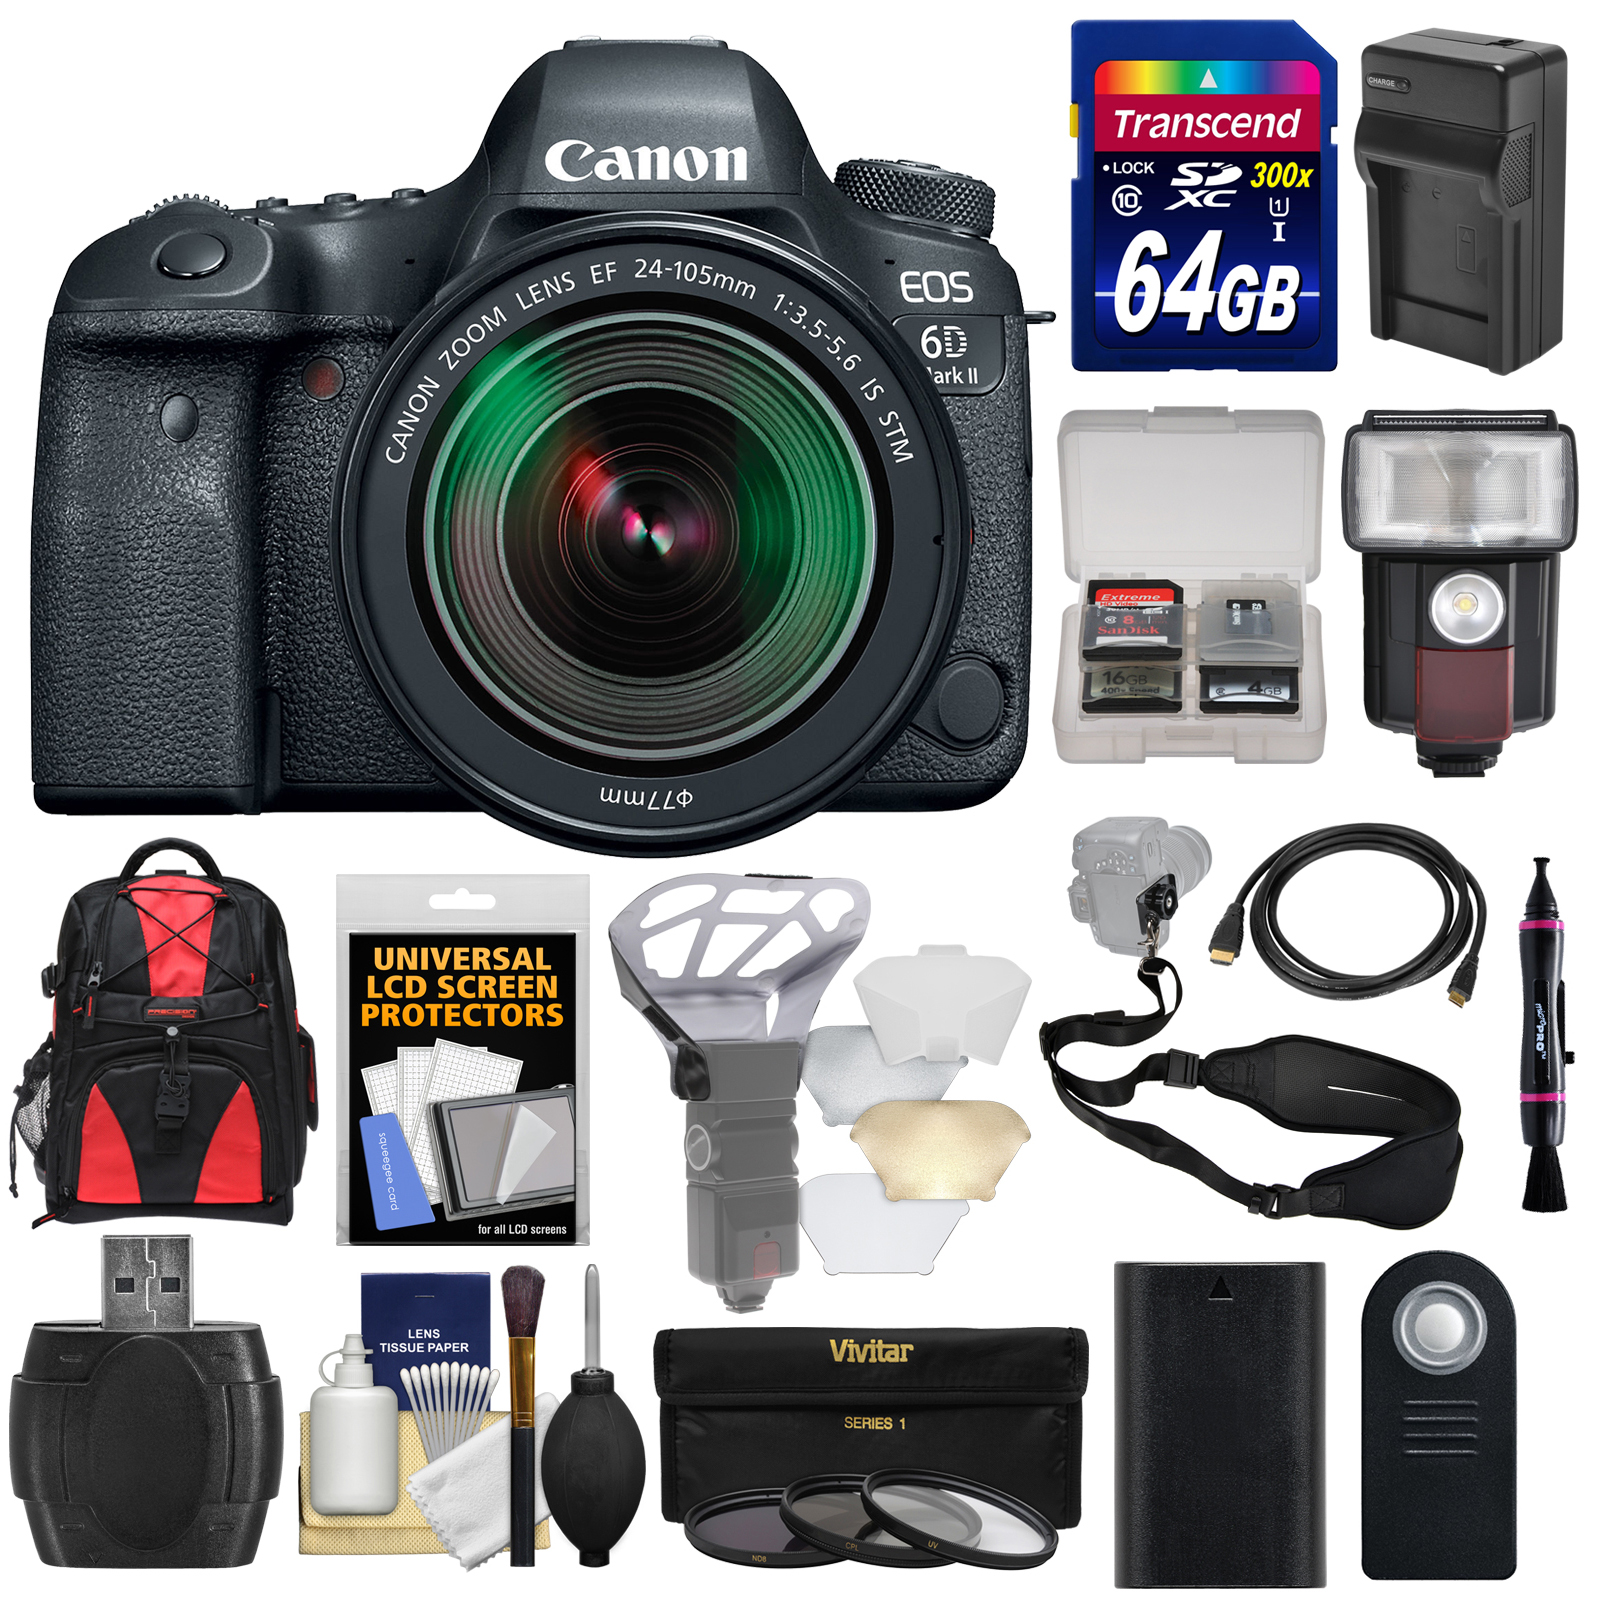 Canon EOS 6D Mark II Wi-Fi Digital SLR Camera & EF 24-105mm IS STM Lens with 64GB Card + Backpack + Flash +... by Canon